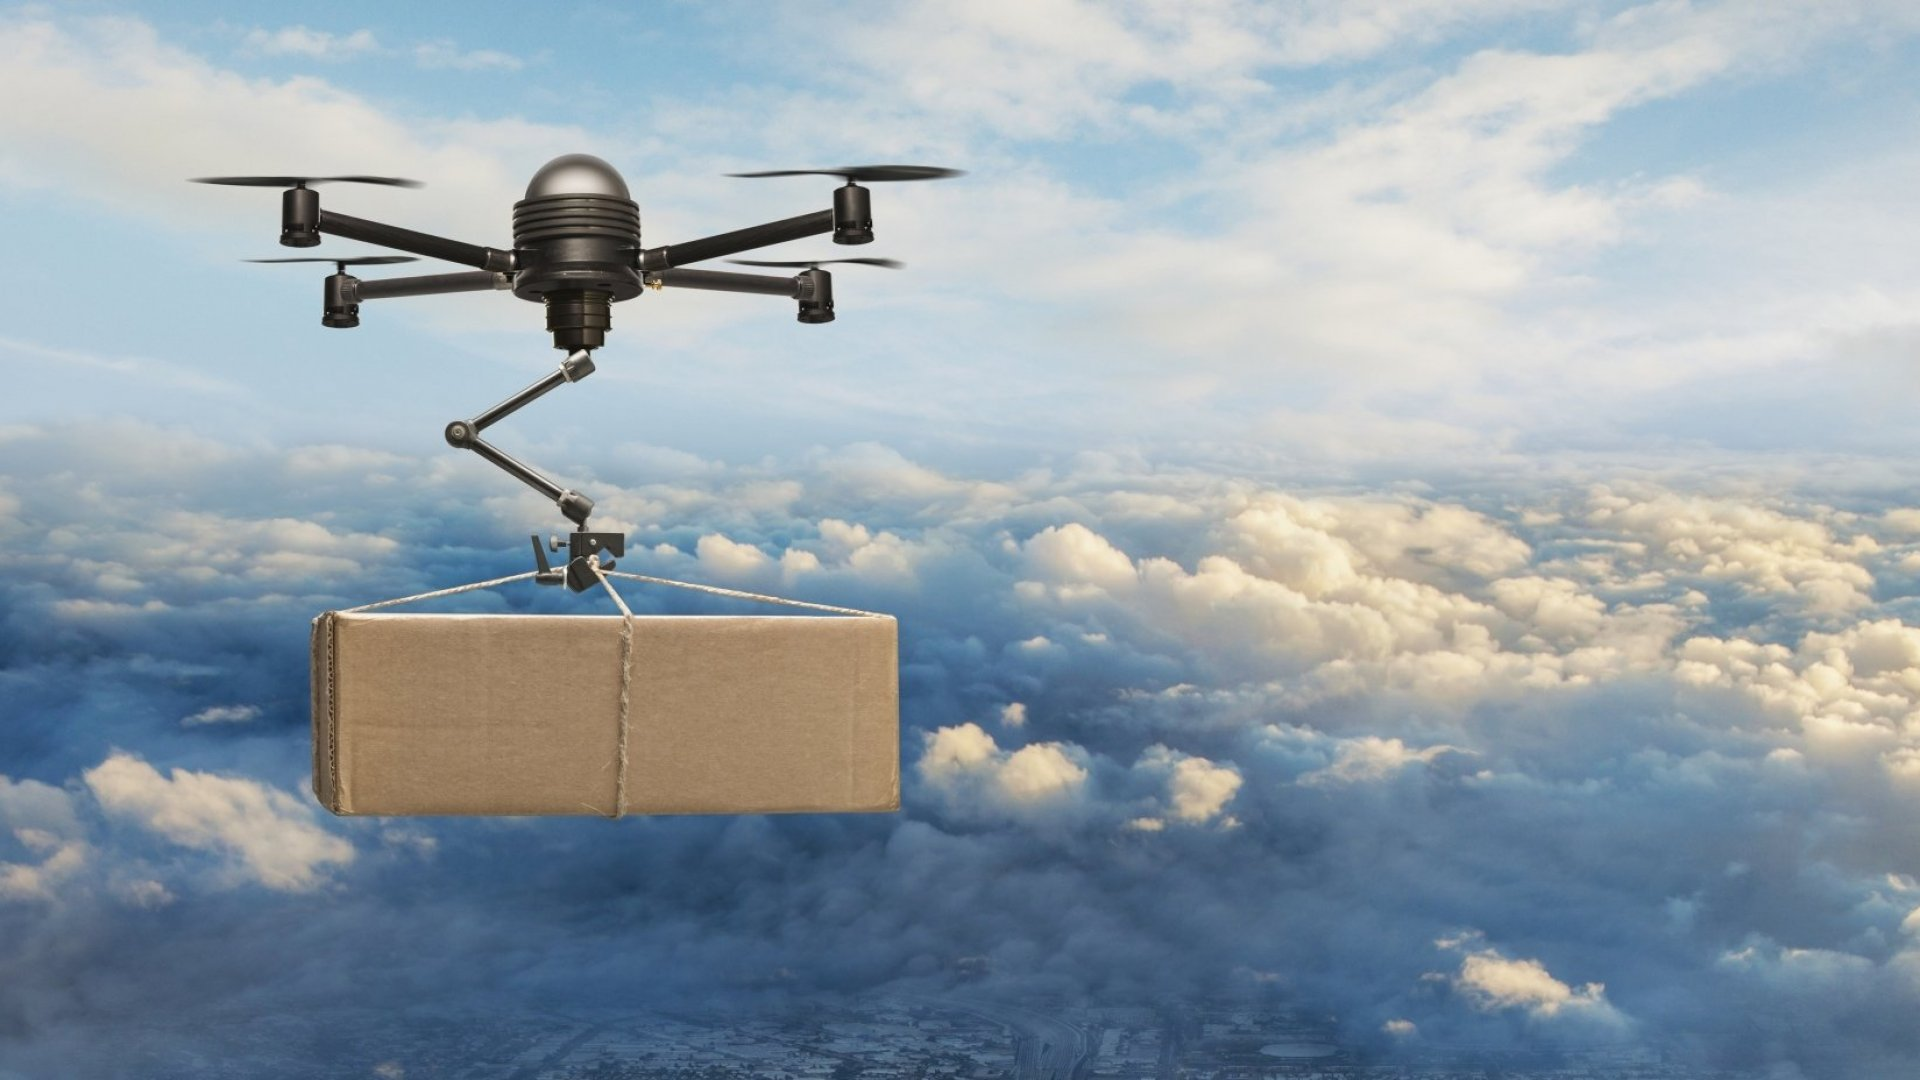 34 Most Disruptive Technologies of the Next Decade